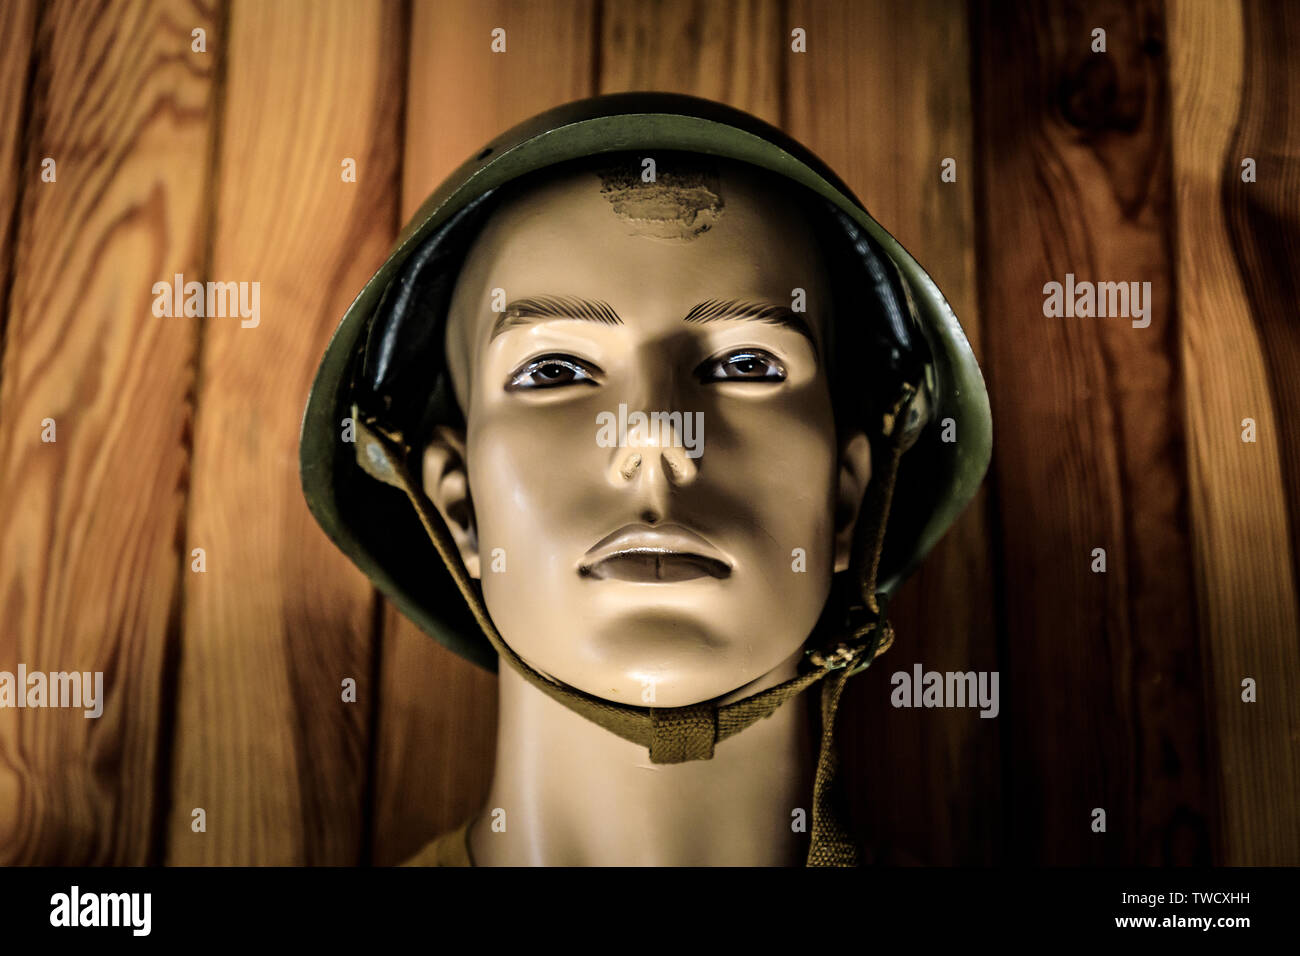 Eastern Europe, Ukraine, Pripyat, Chernobyl. Helmet on a mannequin head. - Stock Image